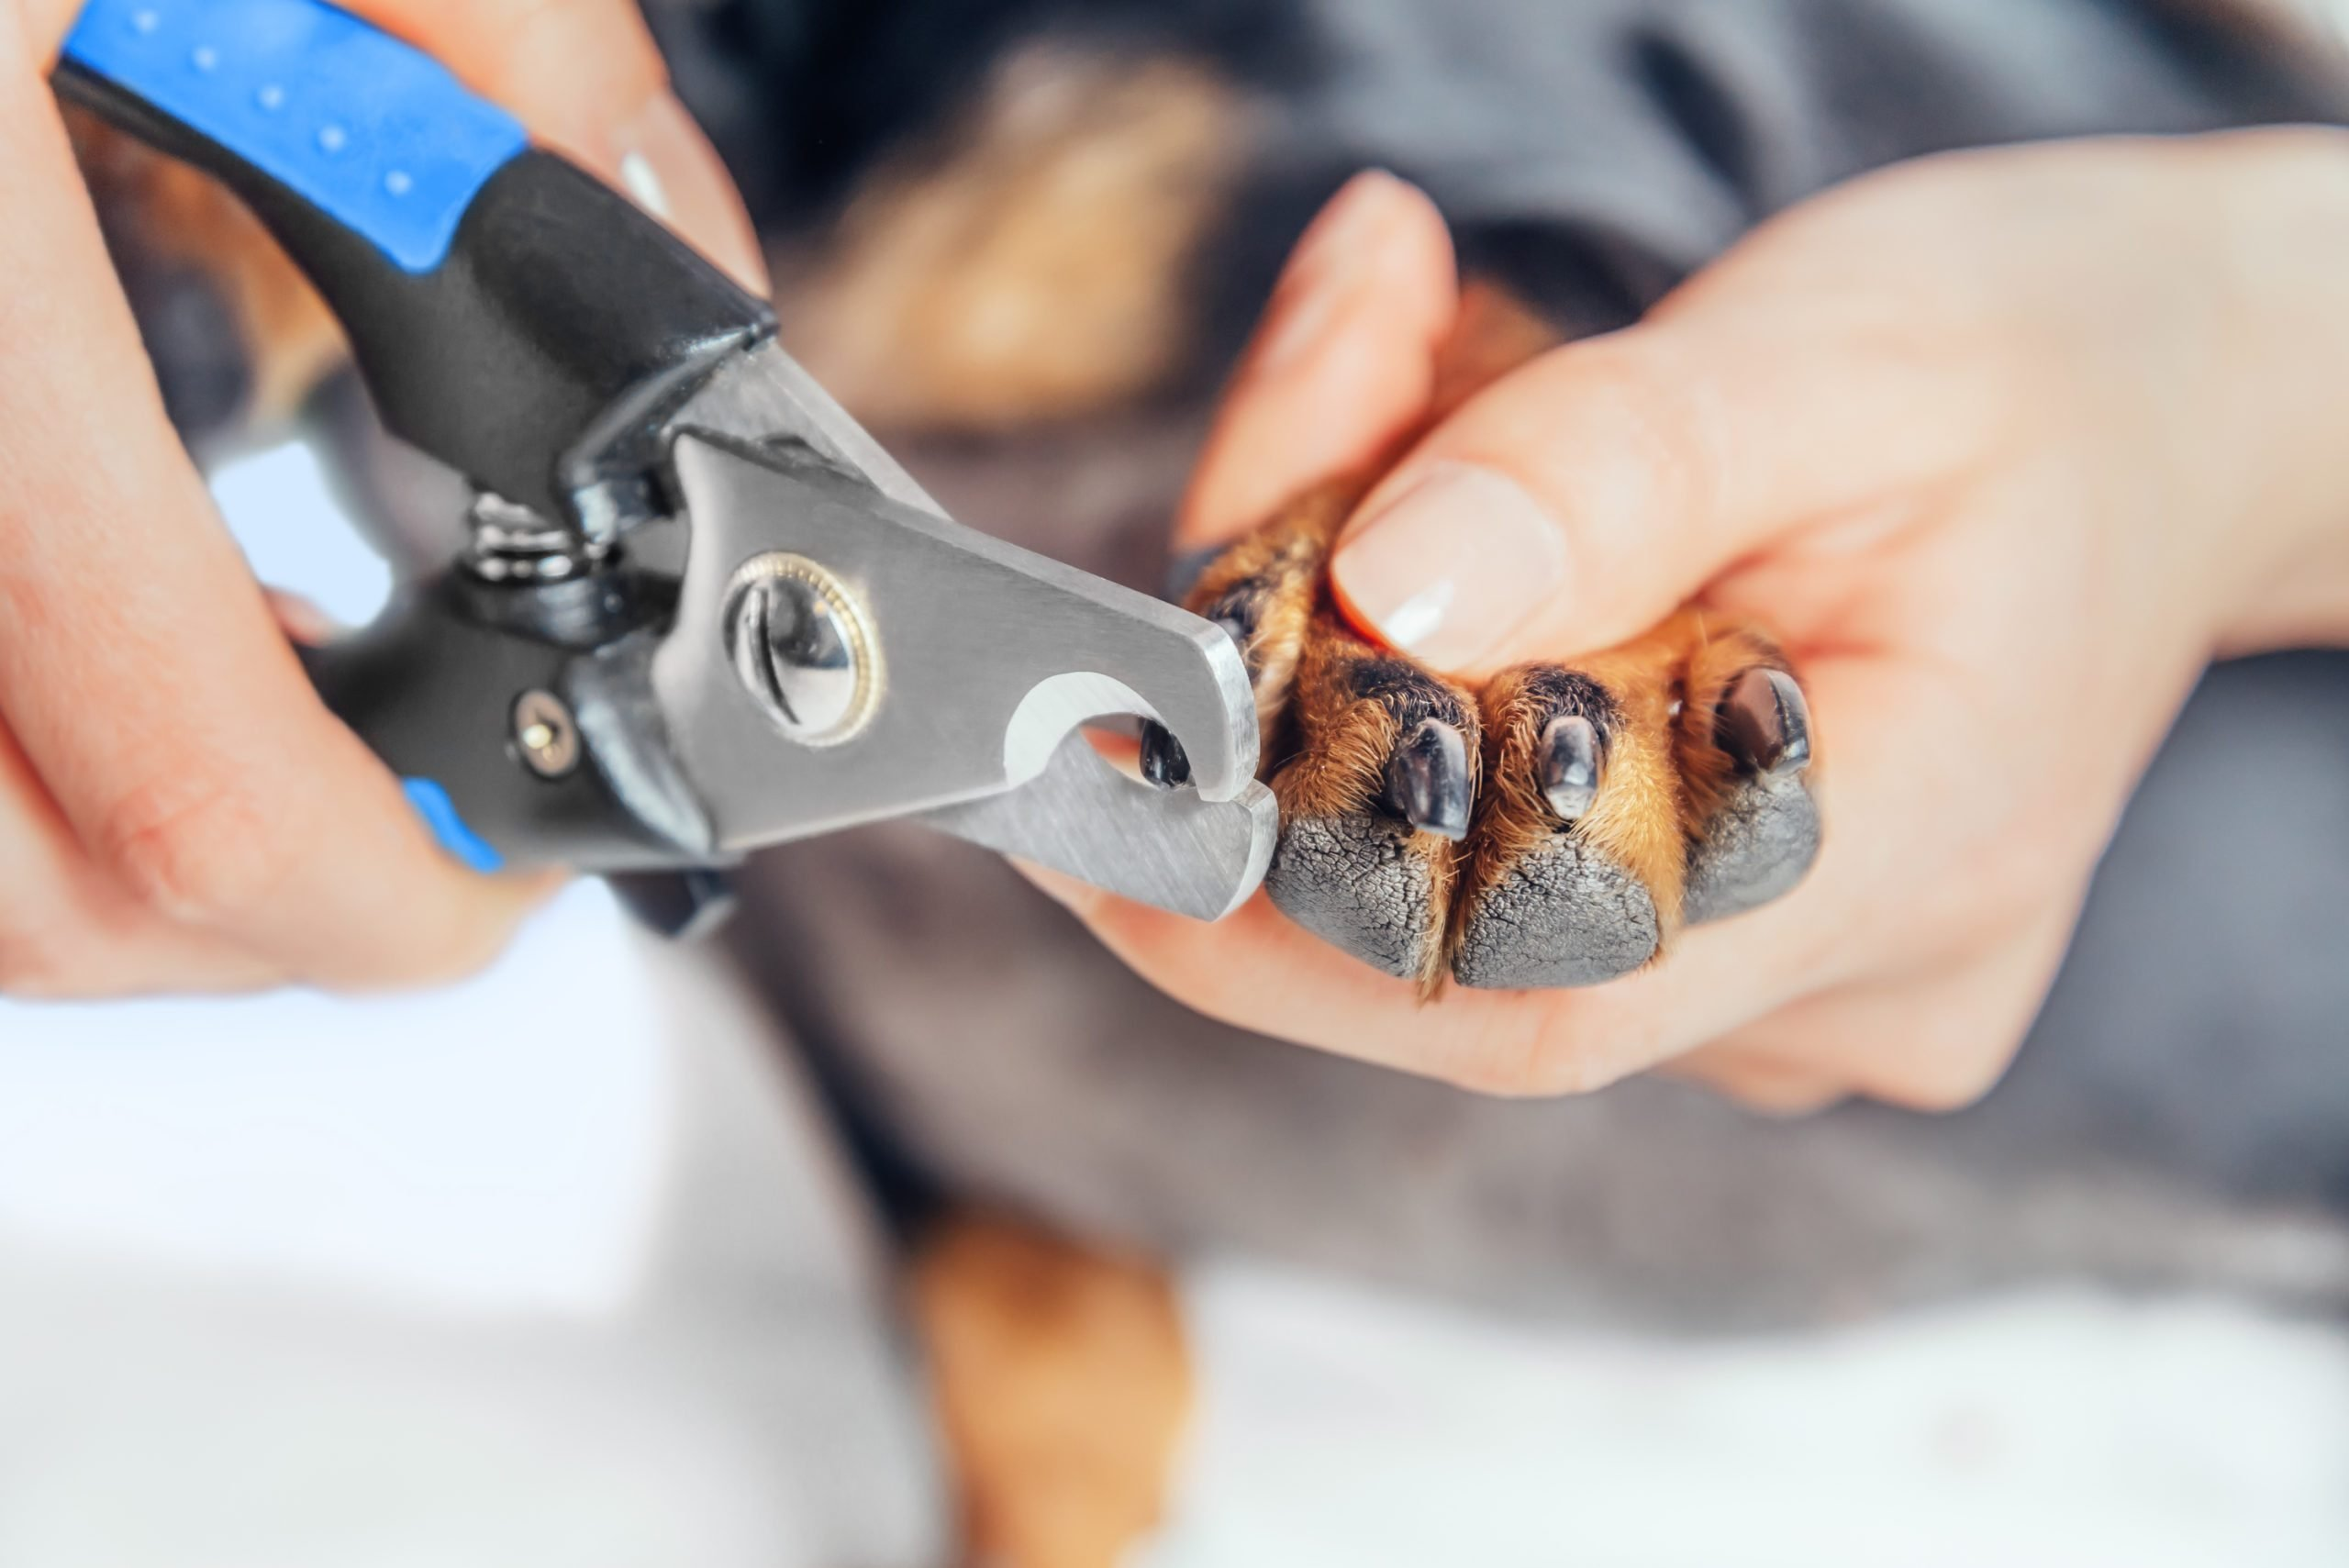 Woman is cutting nails of dog